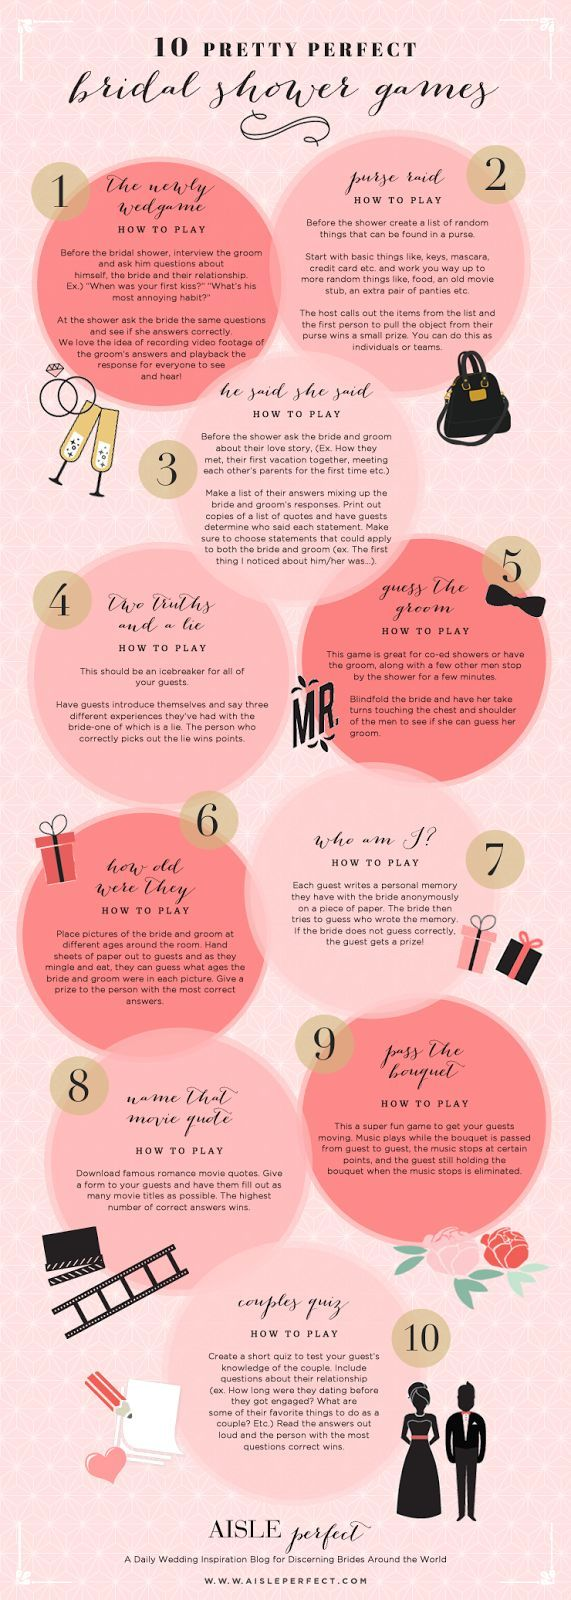 Ten+Pretty+Perfect+Bridal+Shower+Games.png 571×1,600 pixels